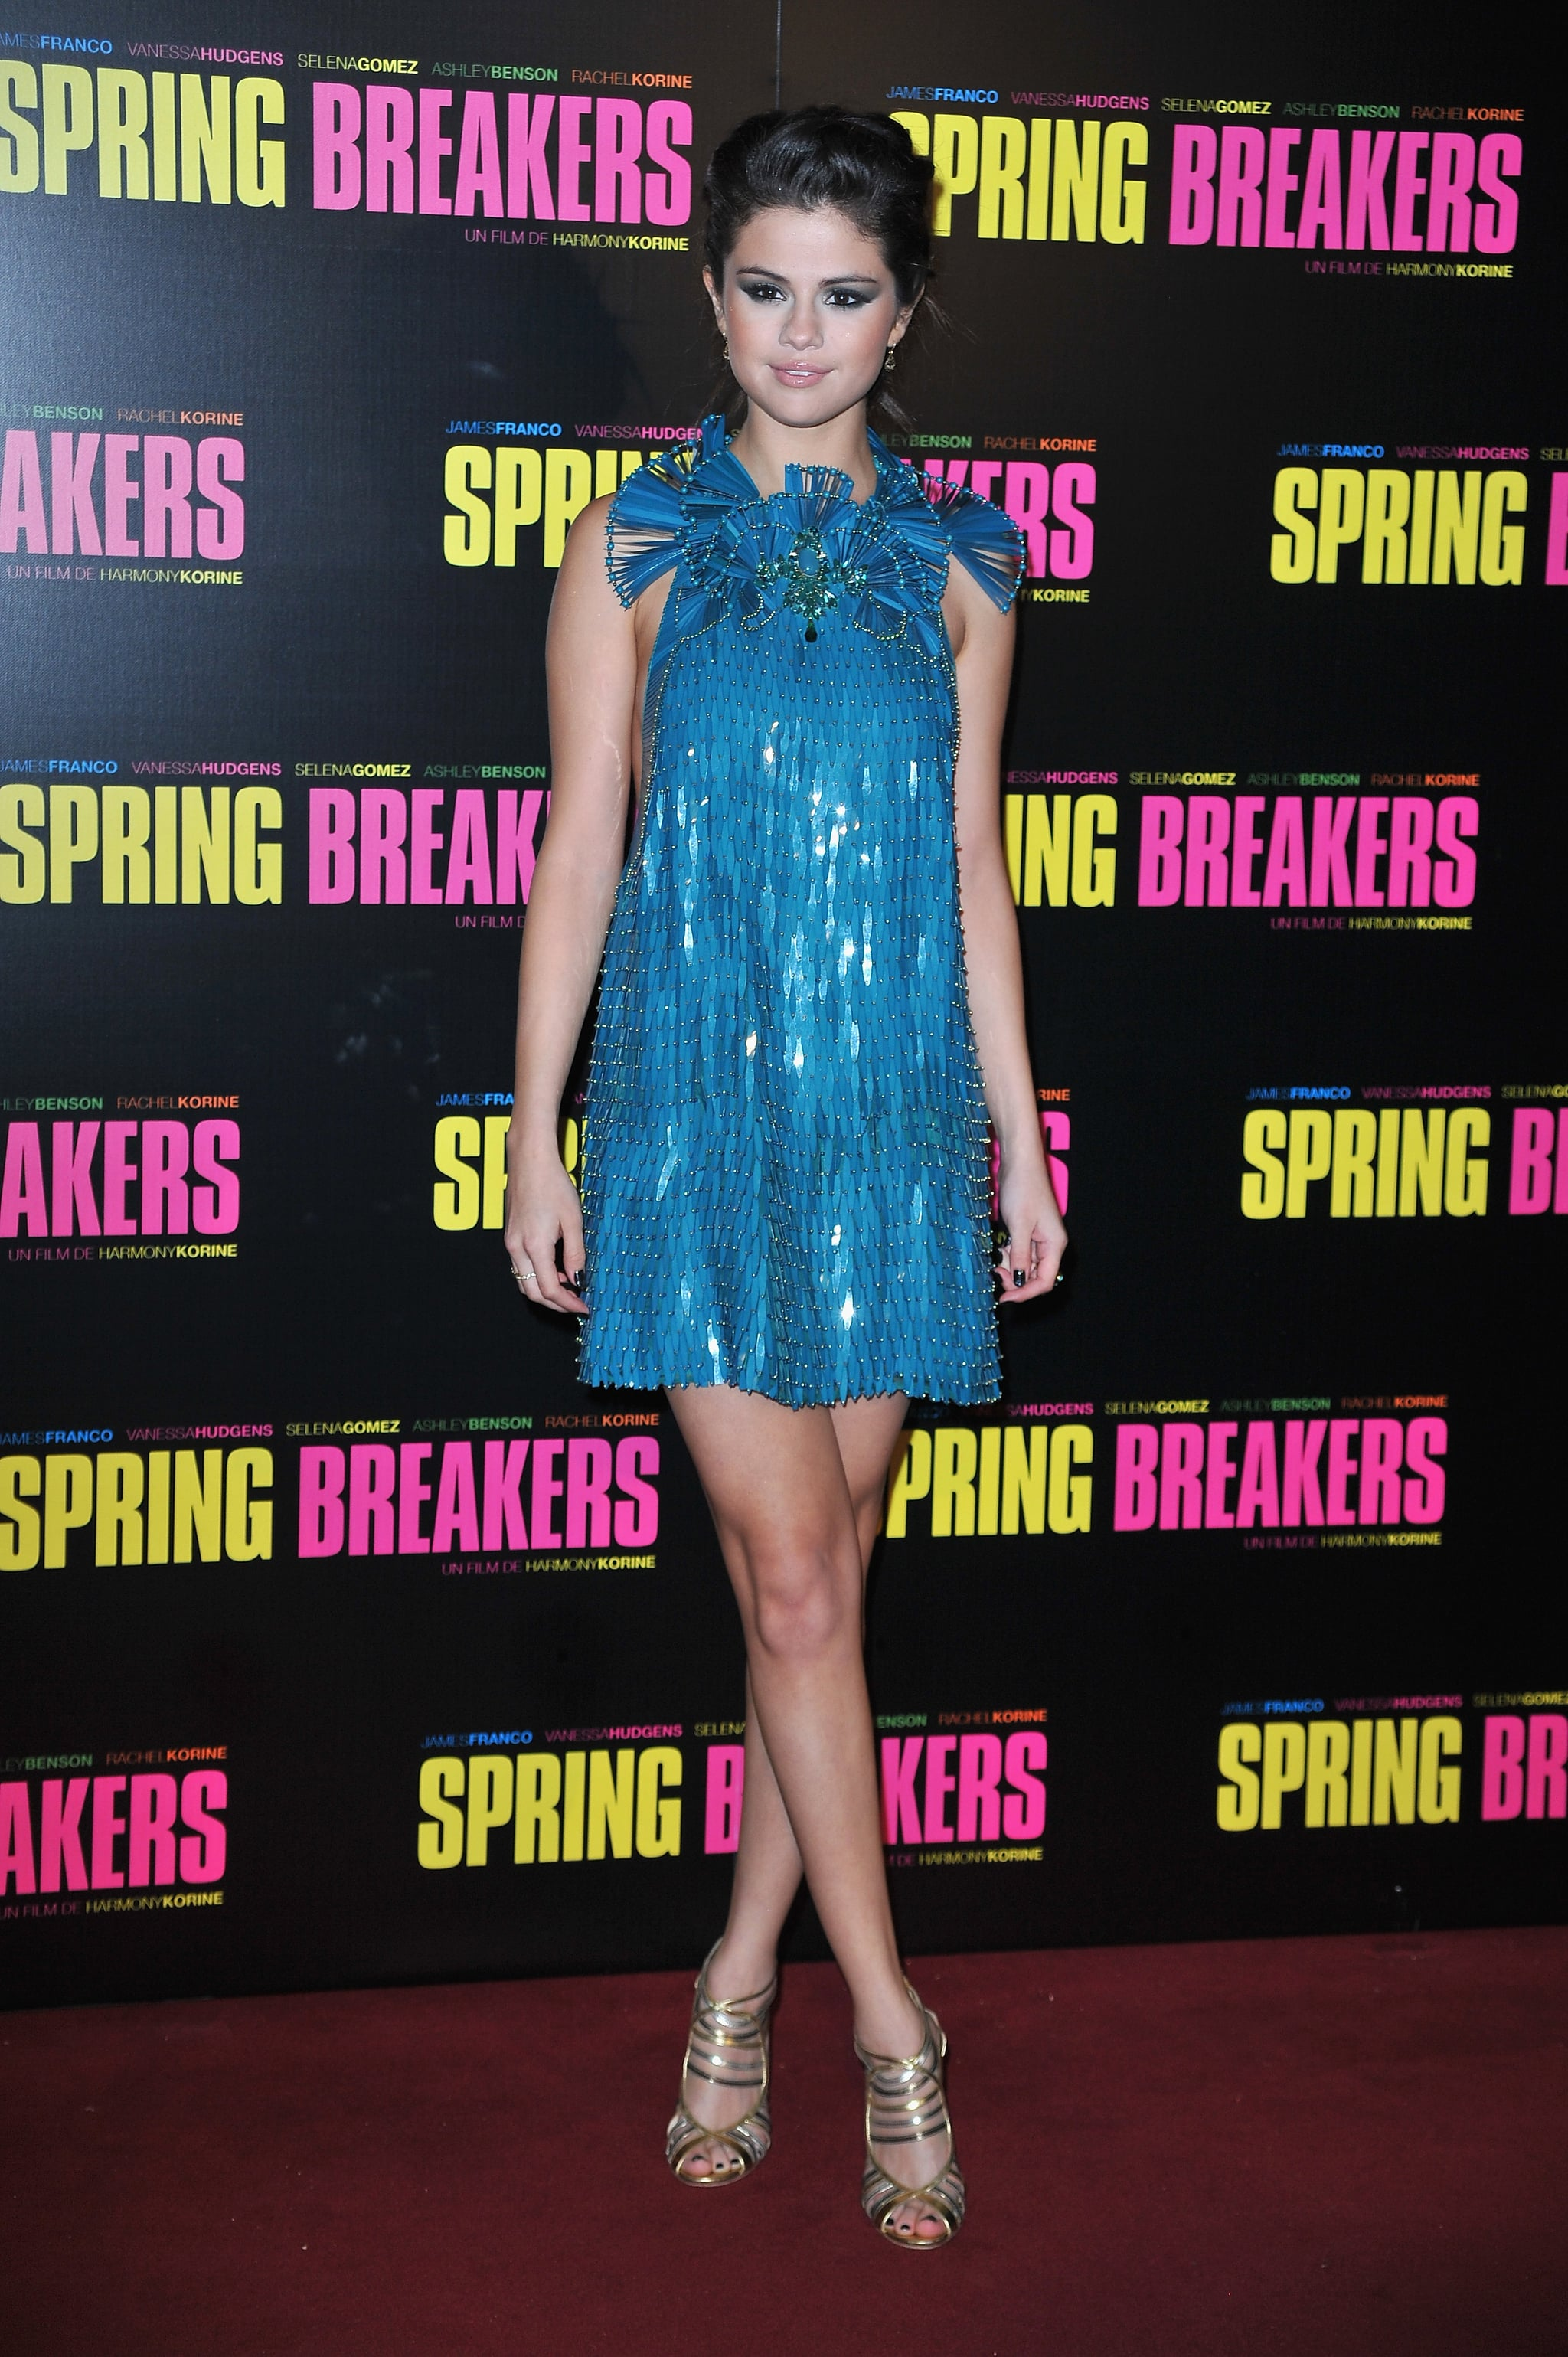 Selena Gomez was all about glitz and glamour in her blue studded Gucci minidress and gold caged Jimmy Choo sandals at the Paris premiere of Spring Breakers.